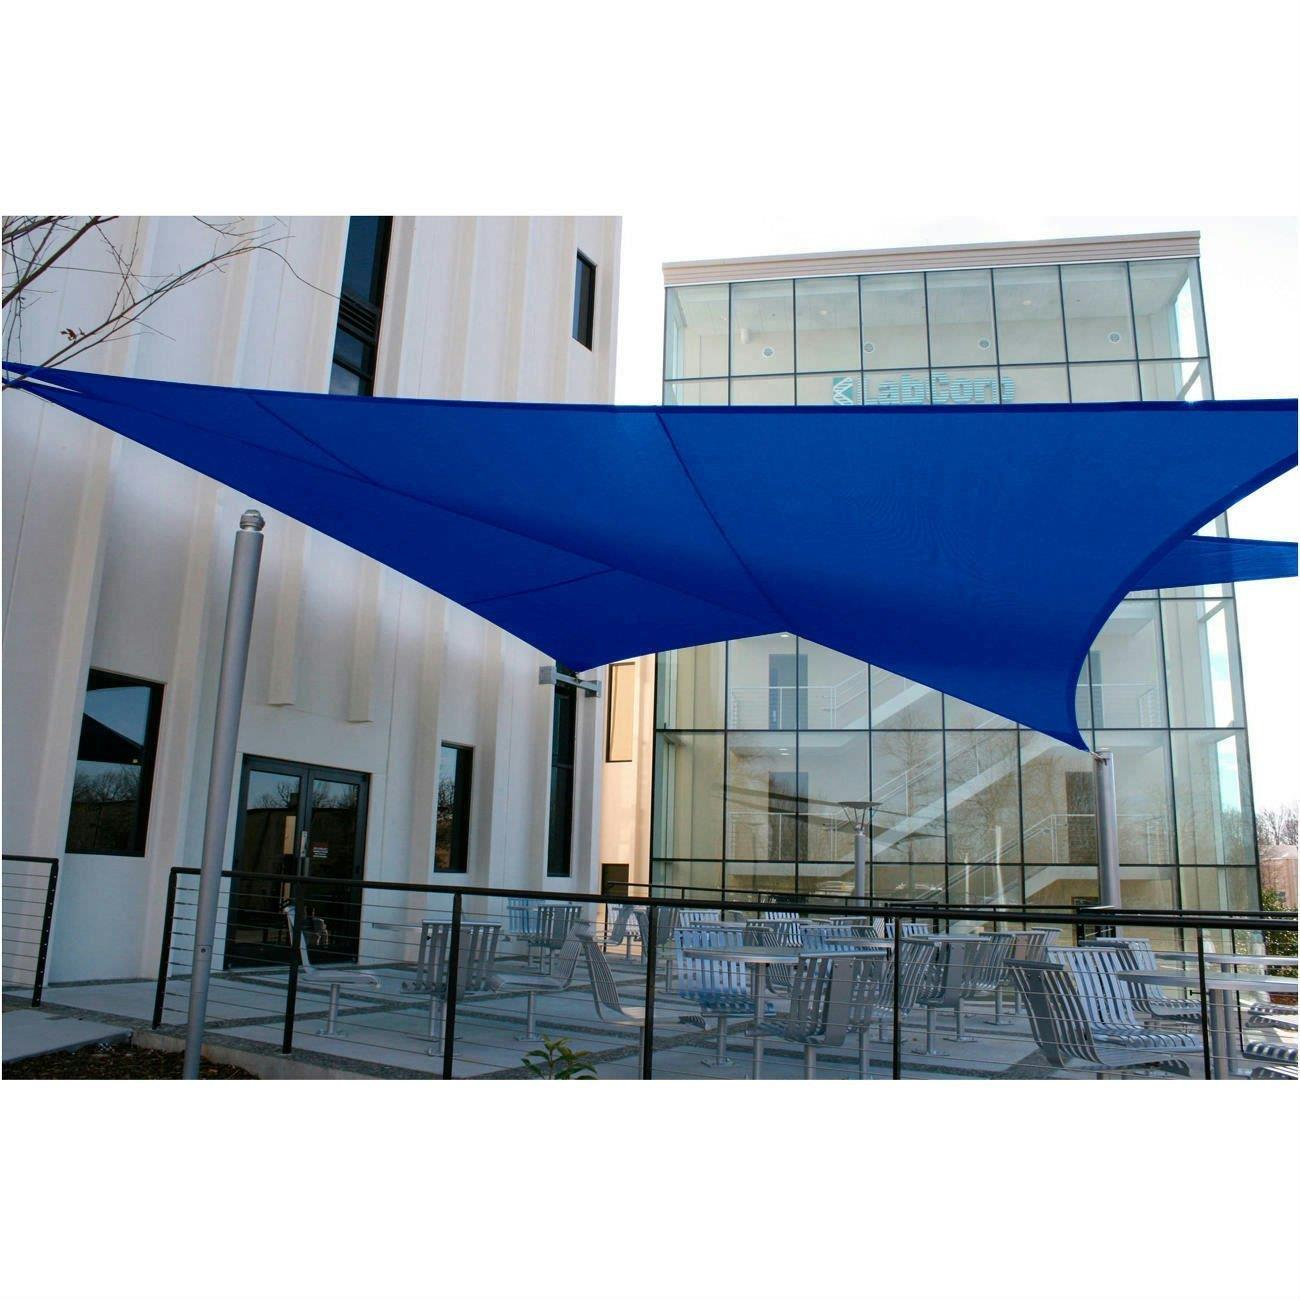 Quictent 12 39 16 5 39 18 39 20 39 triangle sun shade sail outdoor for Shadesails com